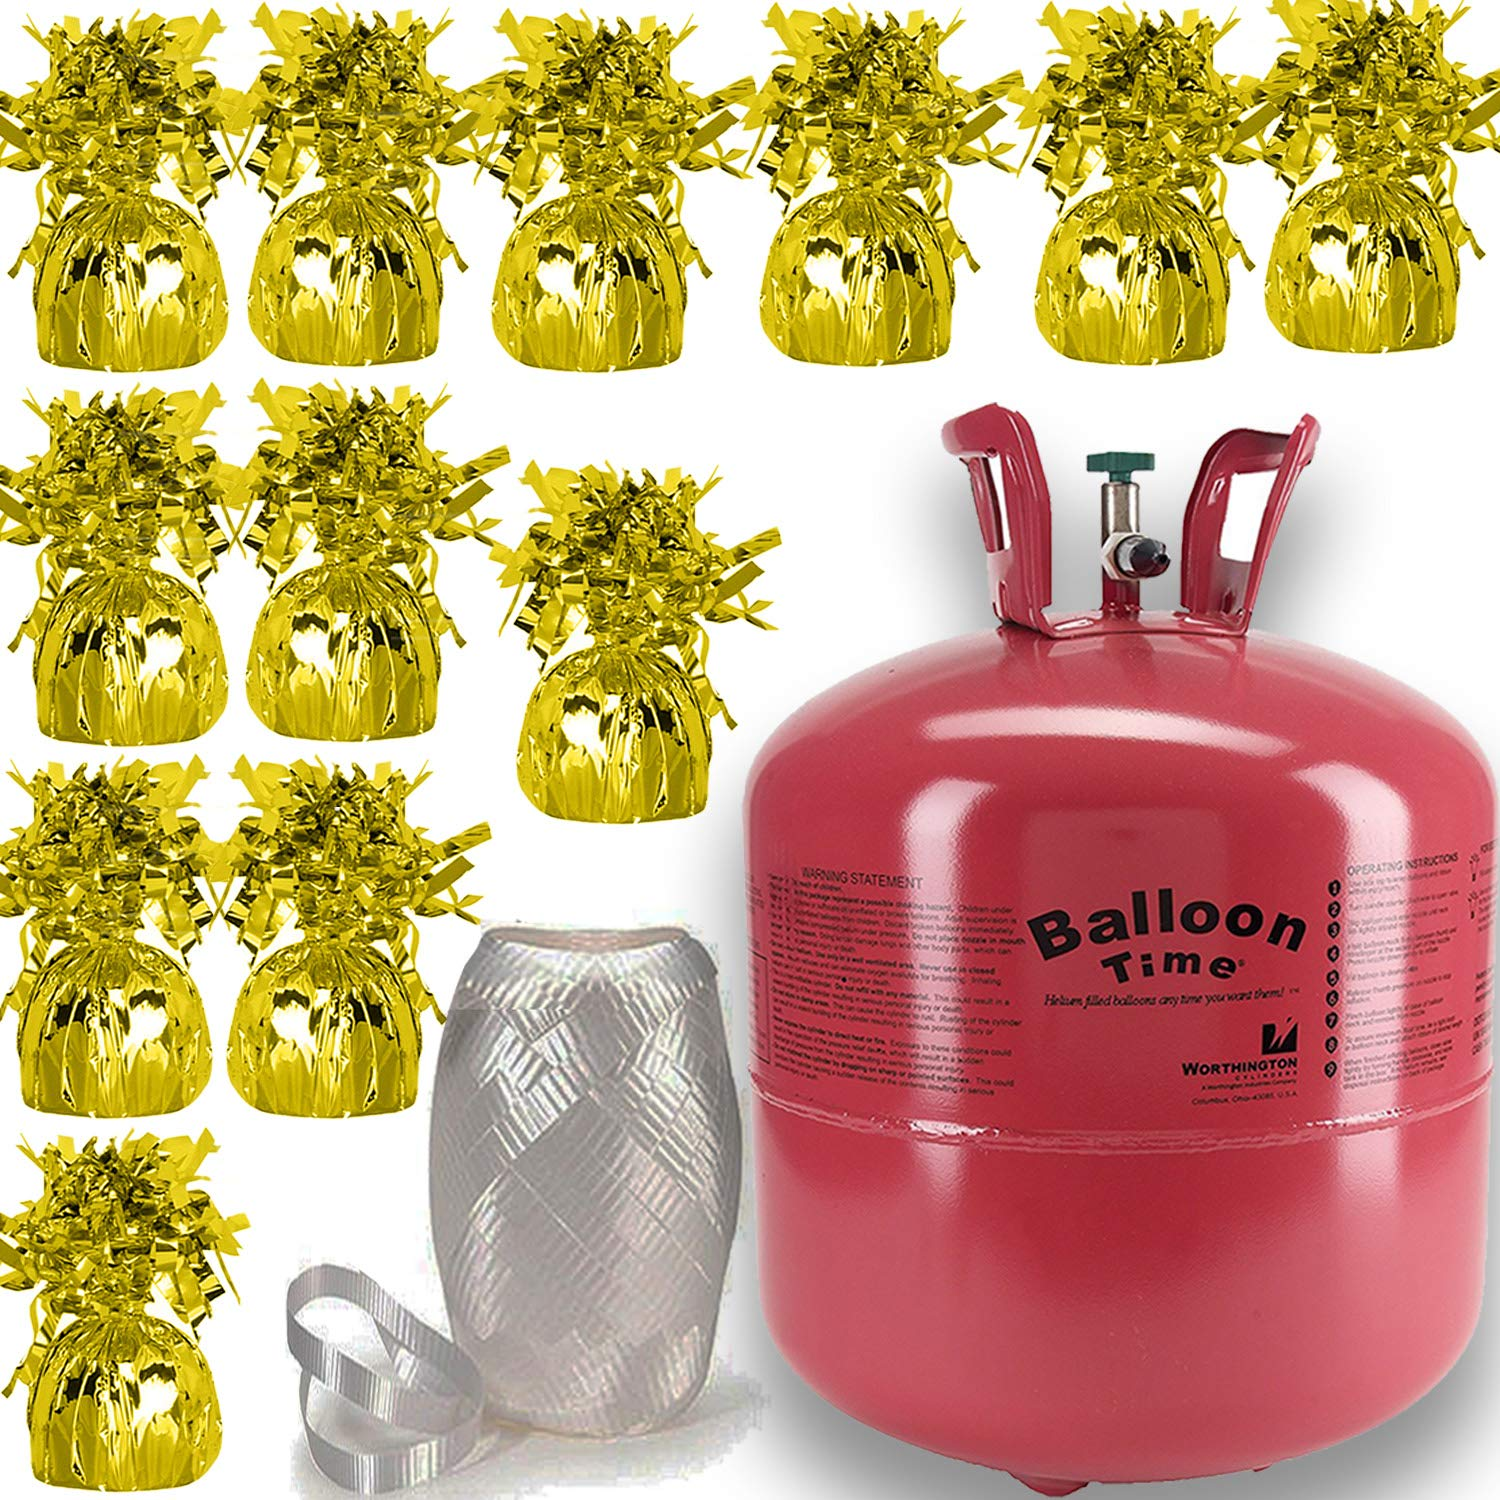 Helium Tank + 12 Balloon Weights, Gold, 5.5'', 5.7 oz + White Curling Ribbon |14.9 Cubic Feet Helium, Enough for 50 9'' Balloons